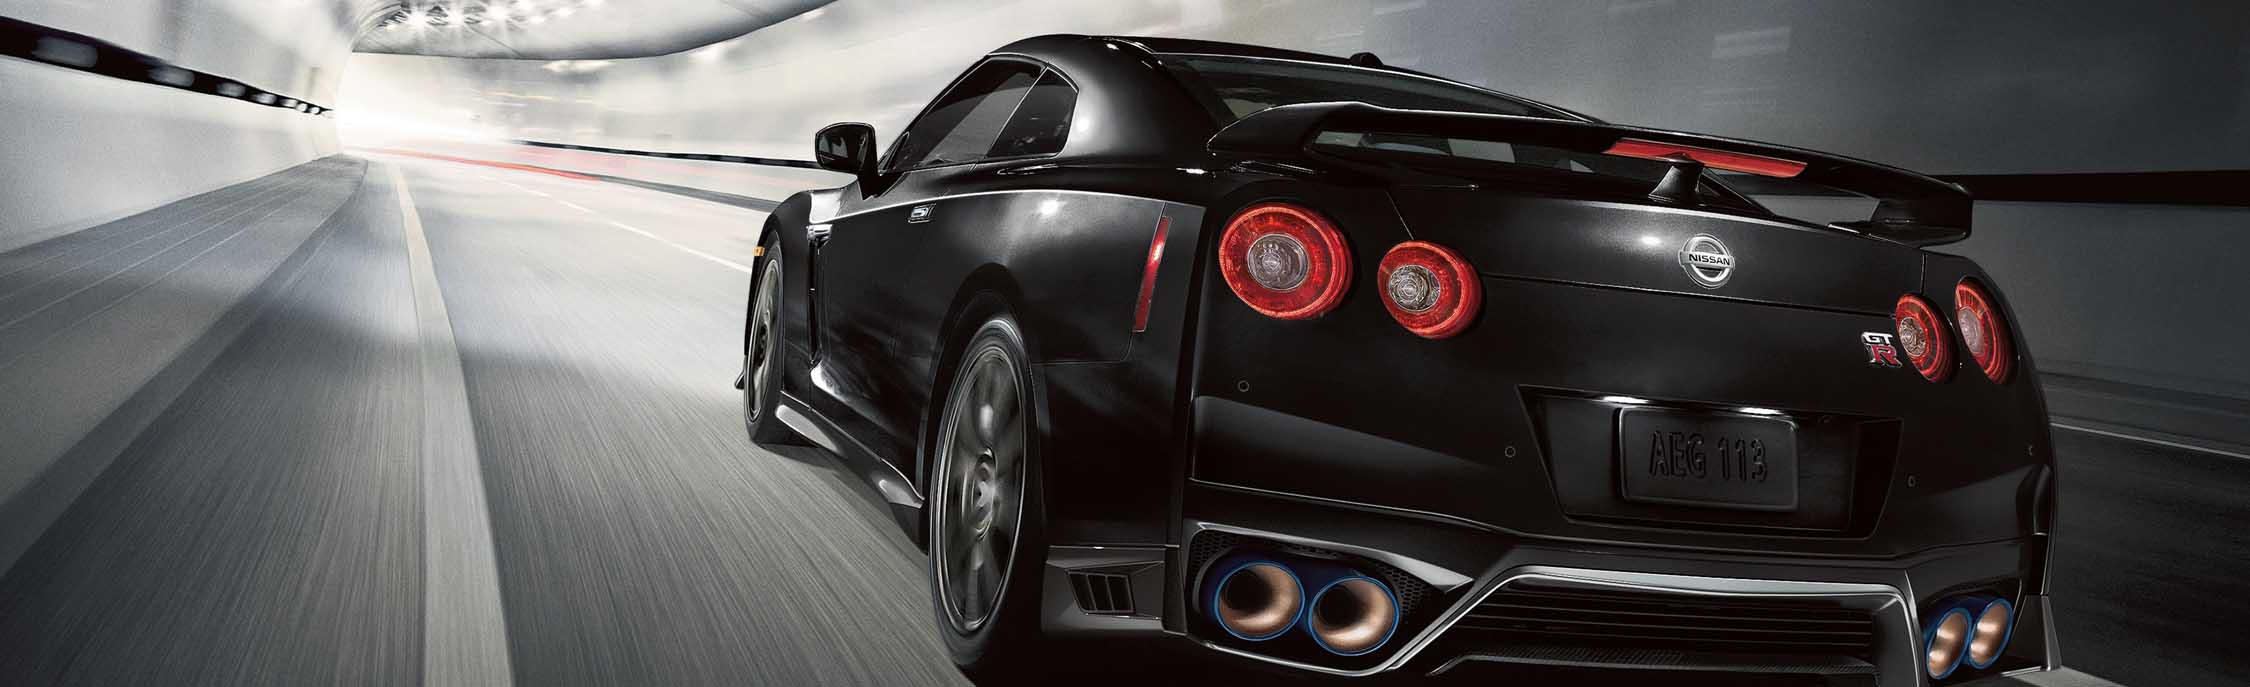 The 2020 Nissan GT-R Is Available At Our Tomball, TX, Auto Dealer